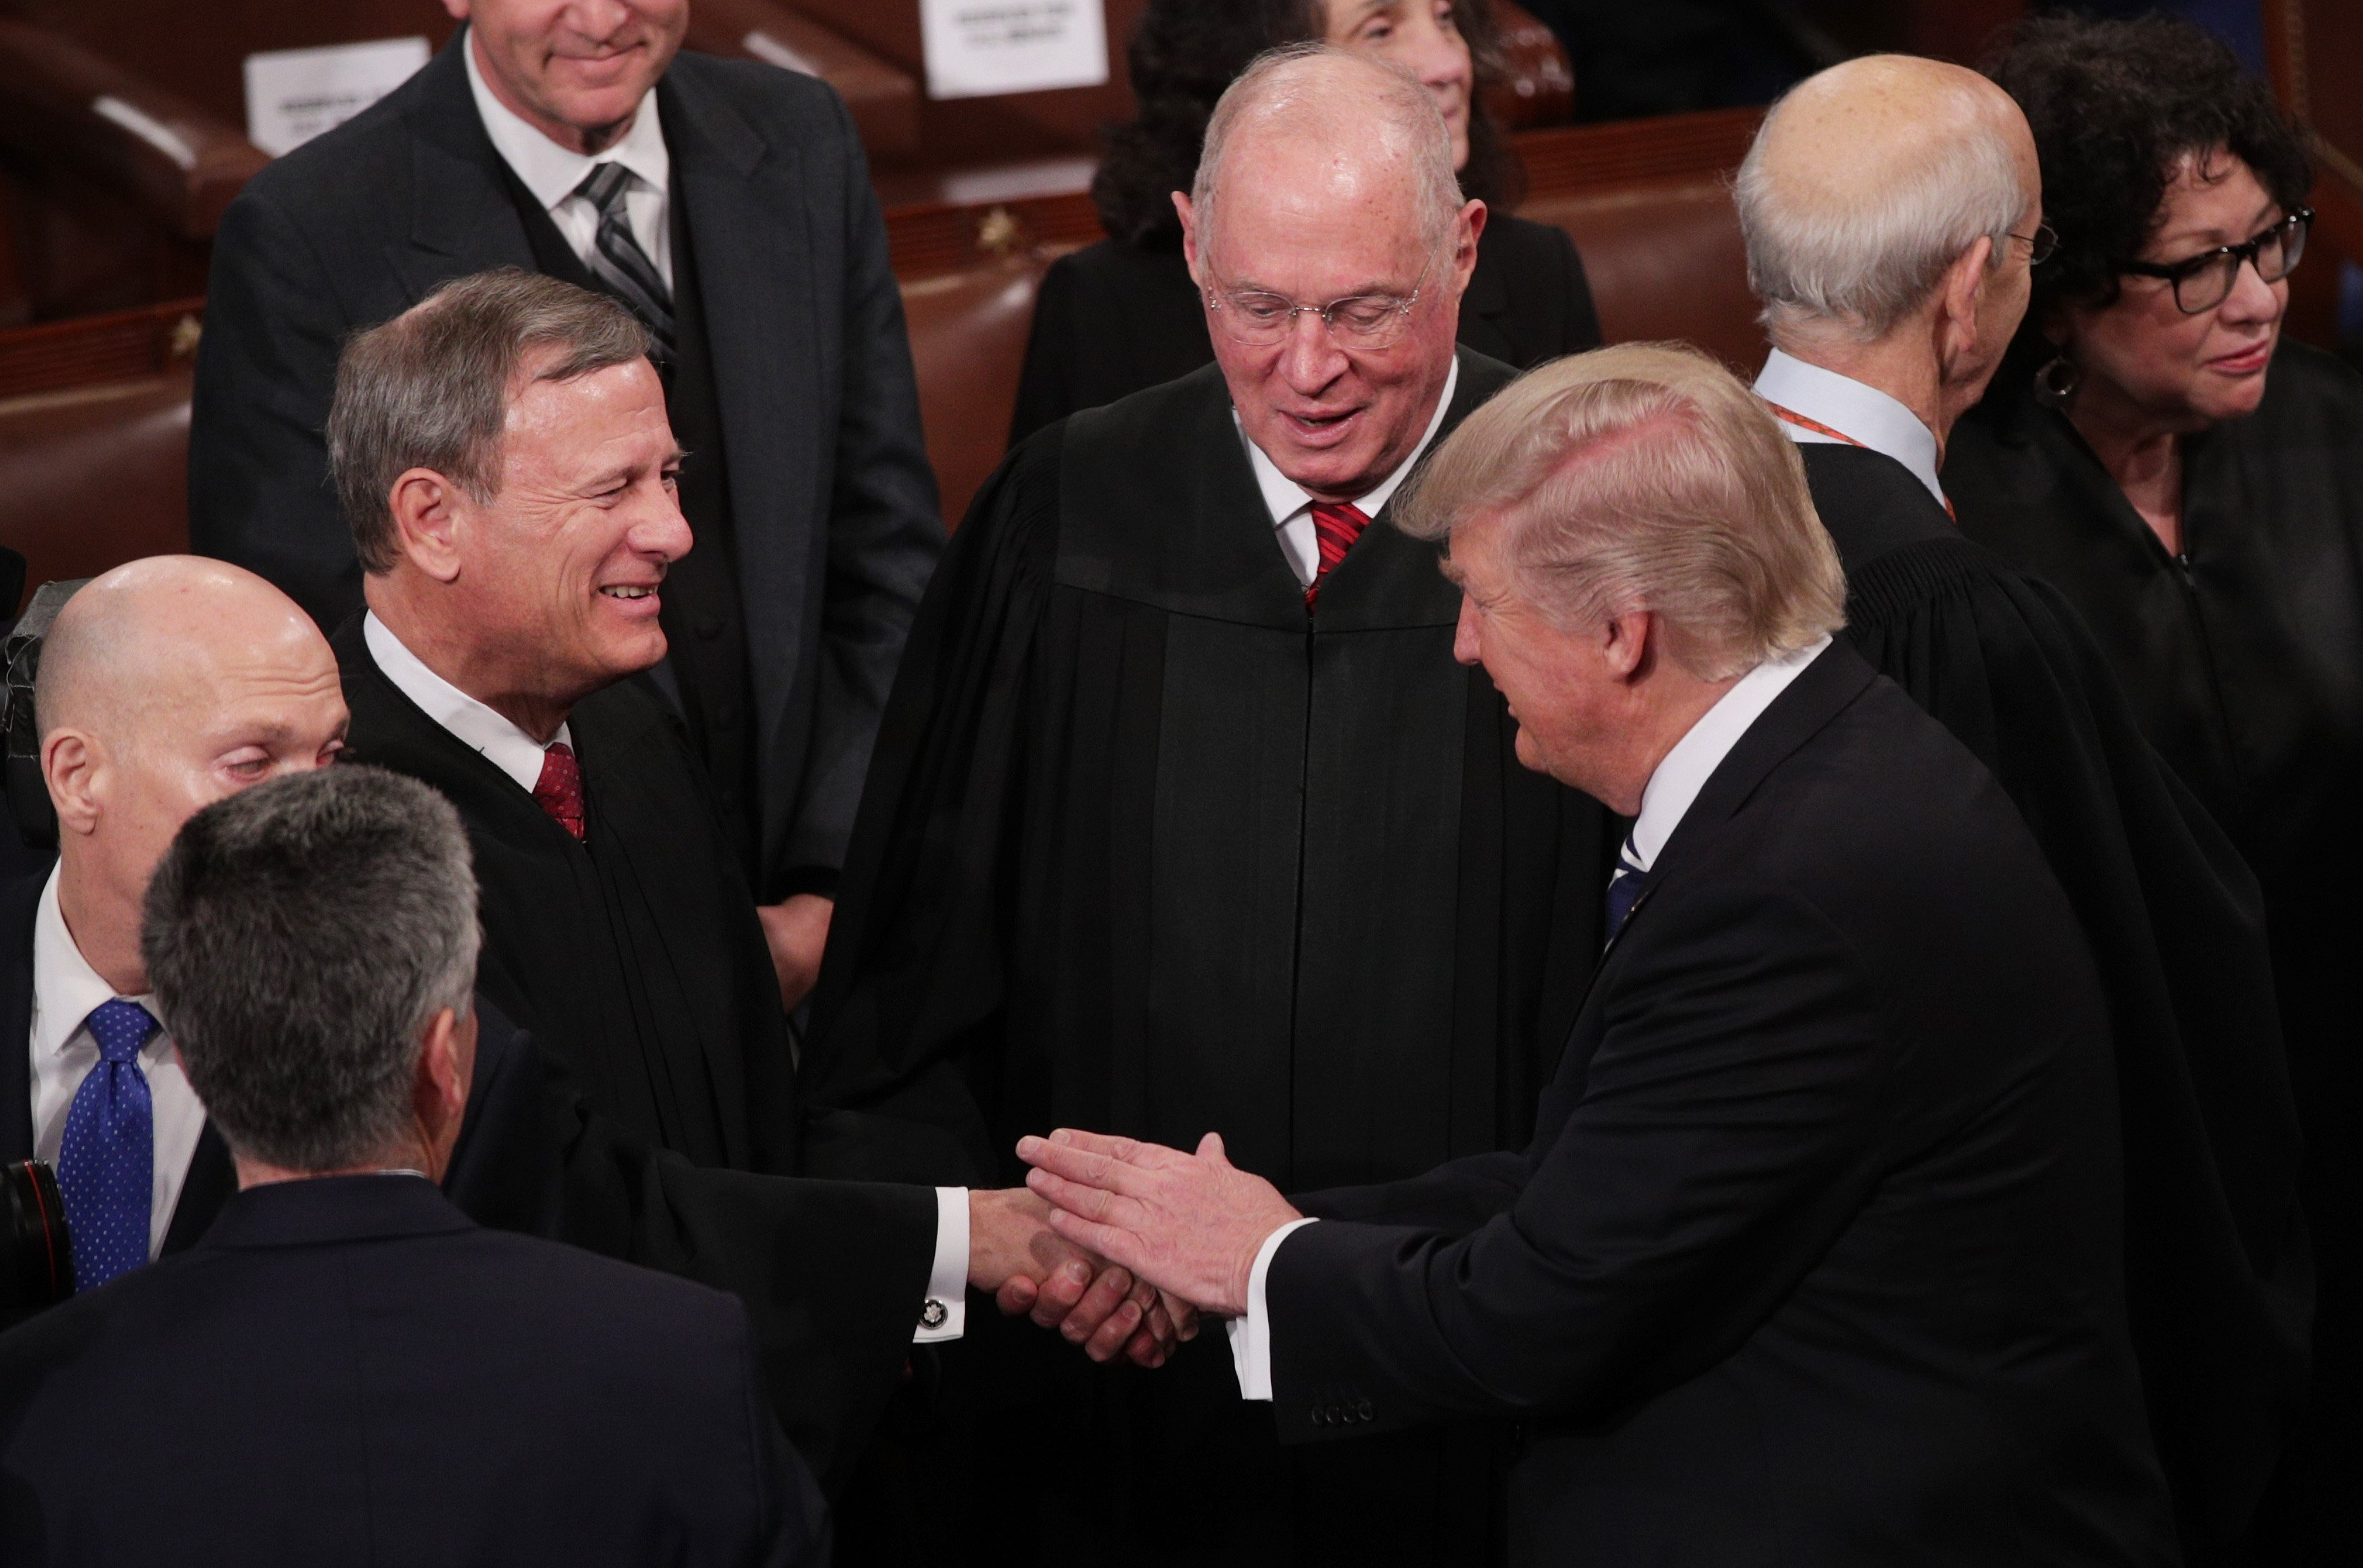 President Donald Trump shakes hands with Chief Justice John Roberts on February 28, 2017. (Alex Wong/Getty Images)